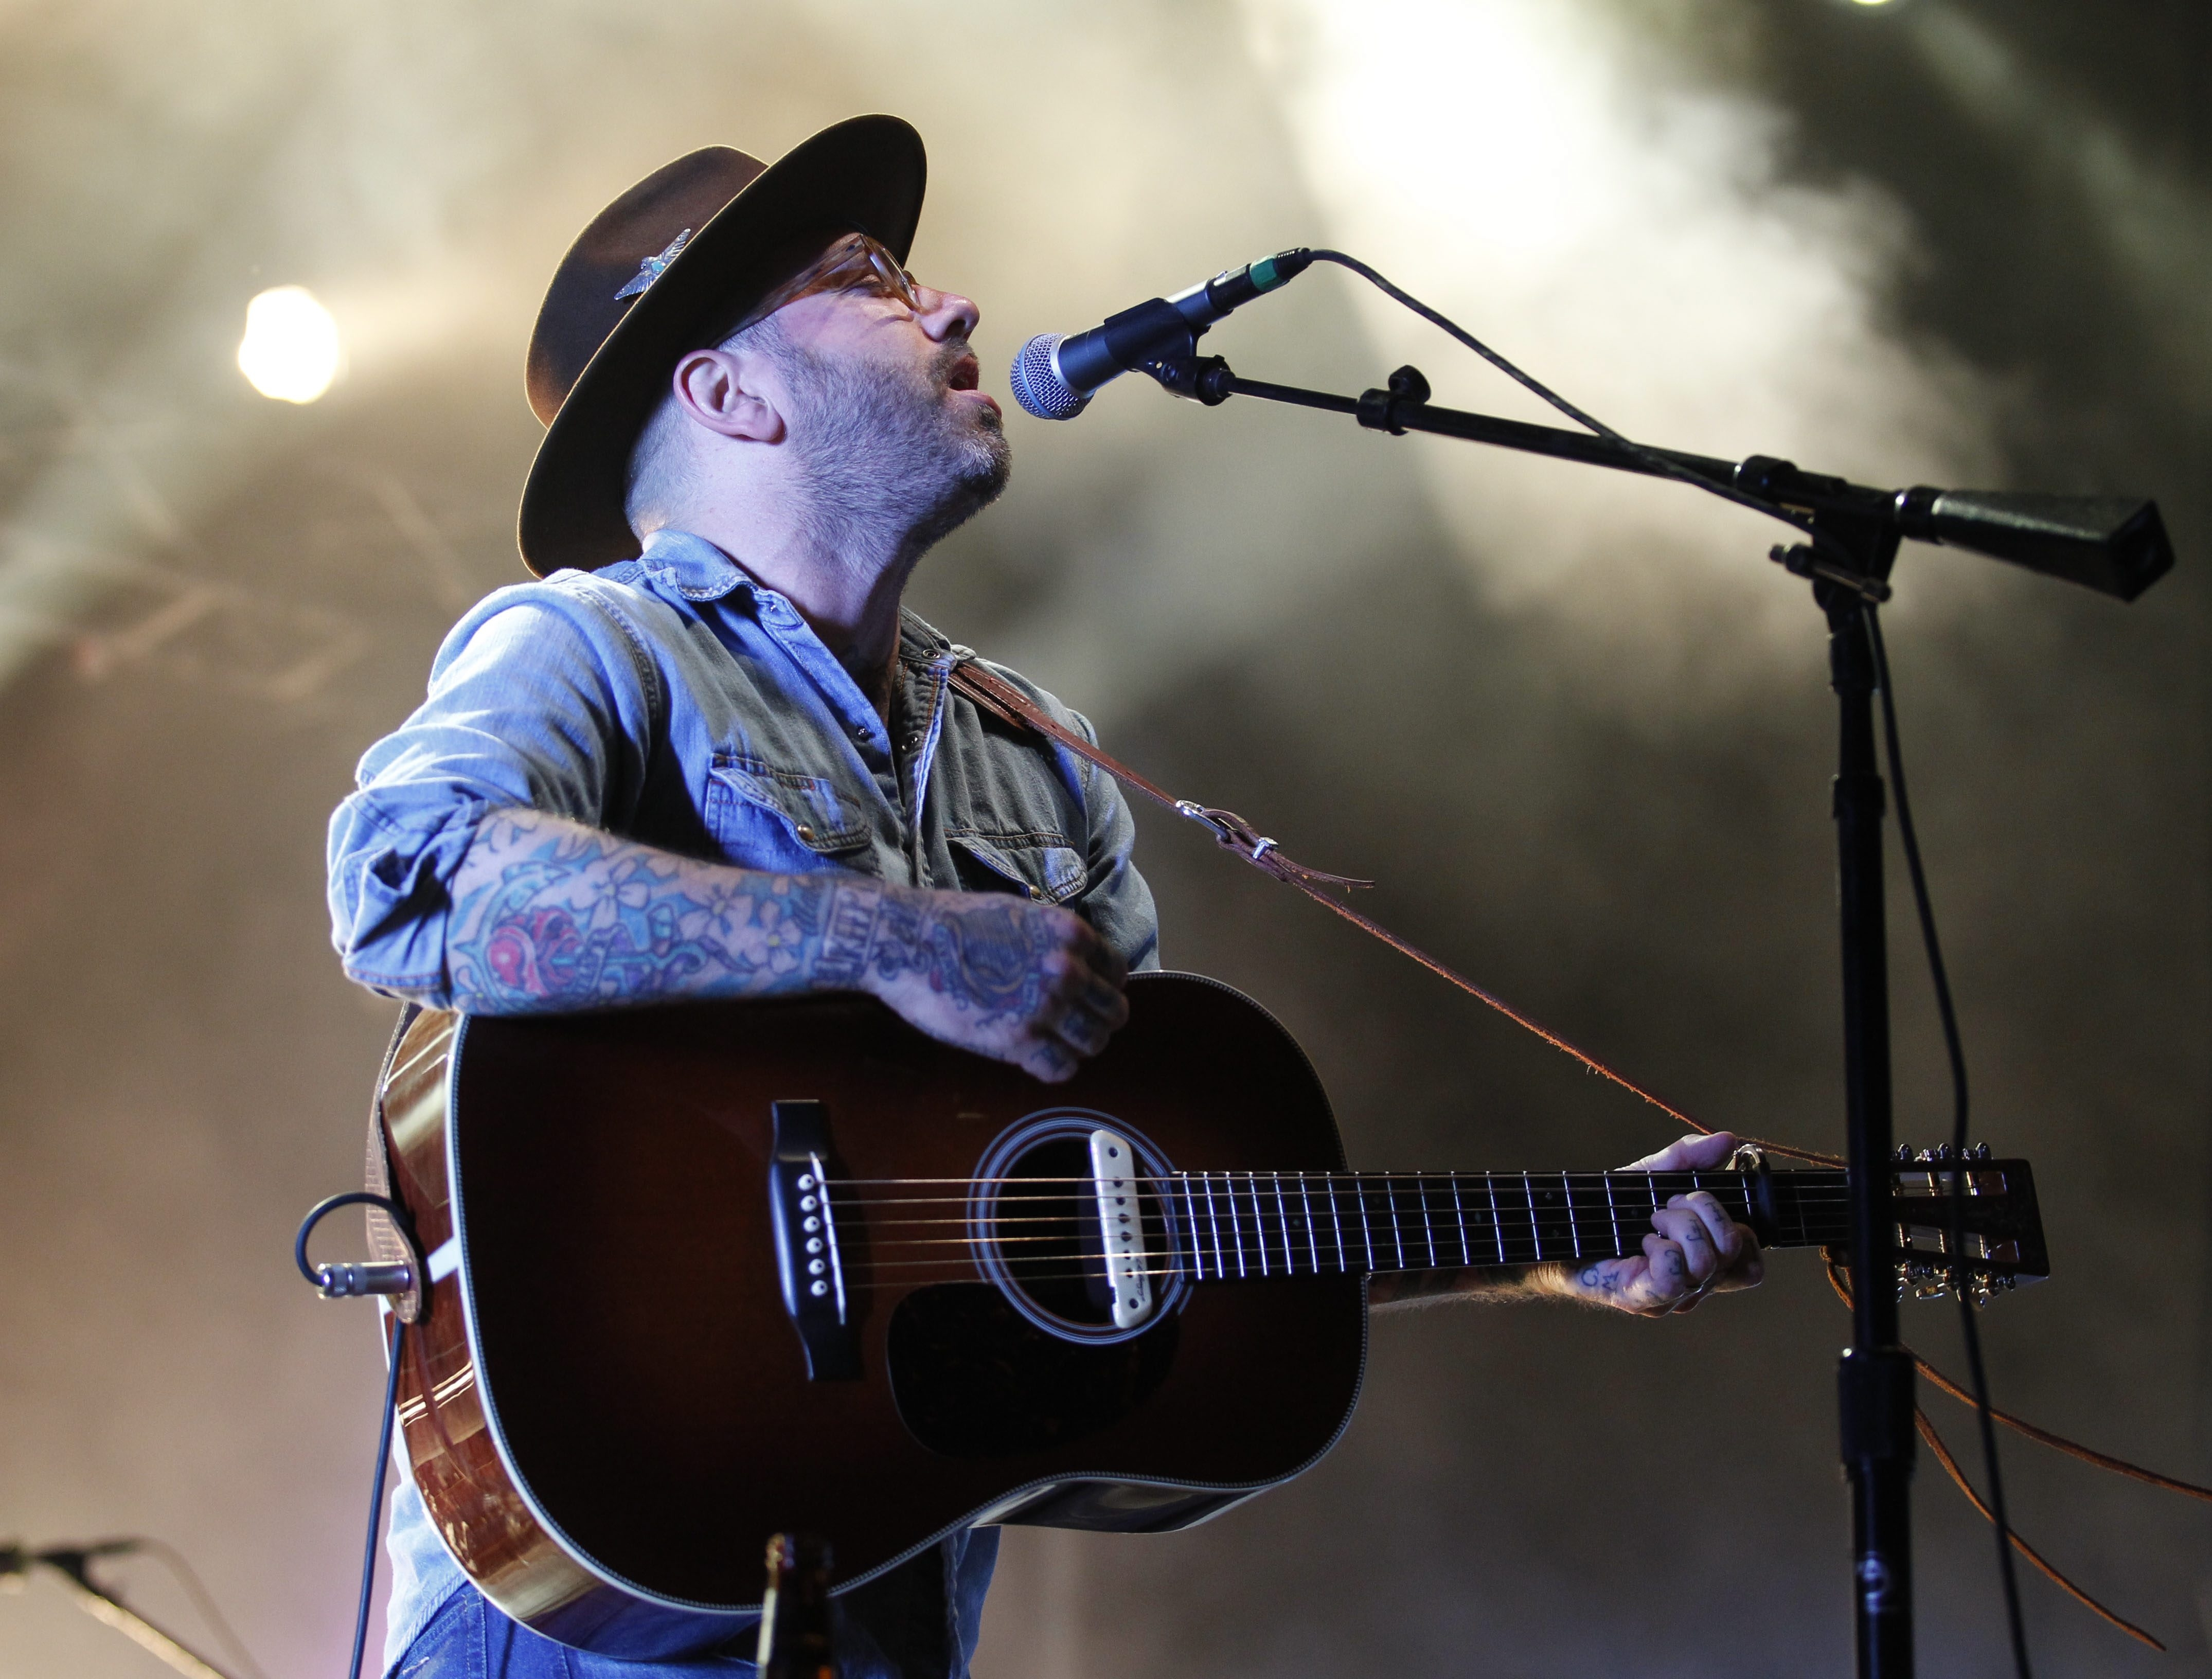 Canadian singer songwriter City and Colour was the headliner of the multi-band show at the Outer Harbor, Friday, July 11, 2014. City and Colour is the recording alias for Dallas Green.  He plays acoustic and folk music and is often accompanied by a rotating number of Canadian indie rock musicians. (Sharon Cantillon/Buffalo News)